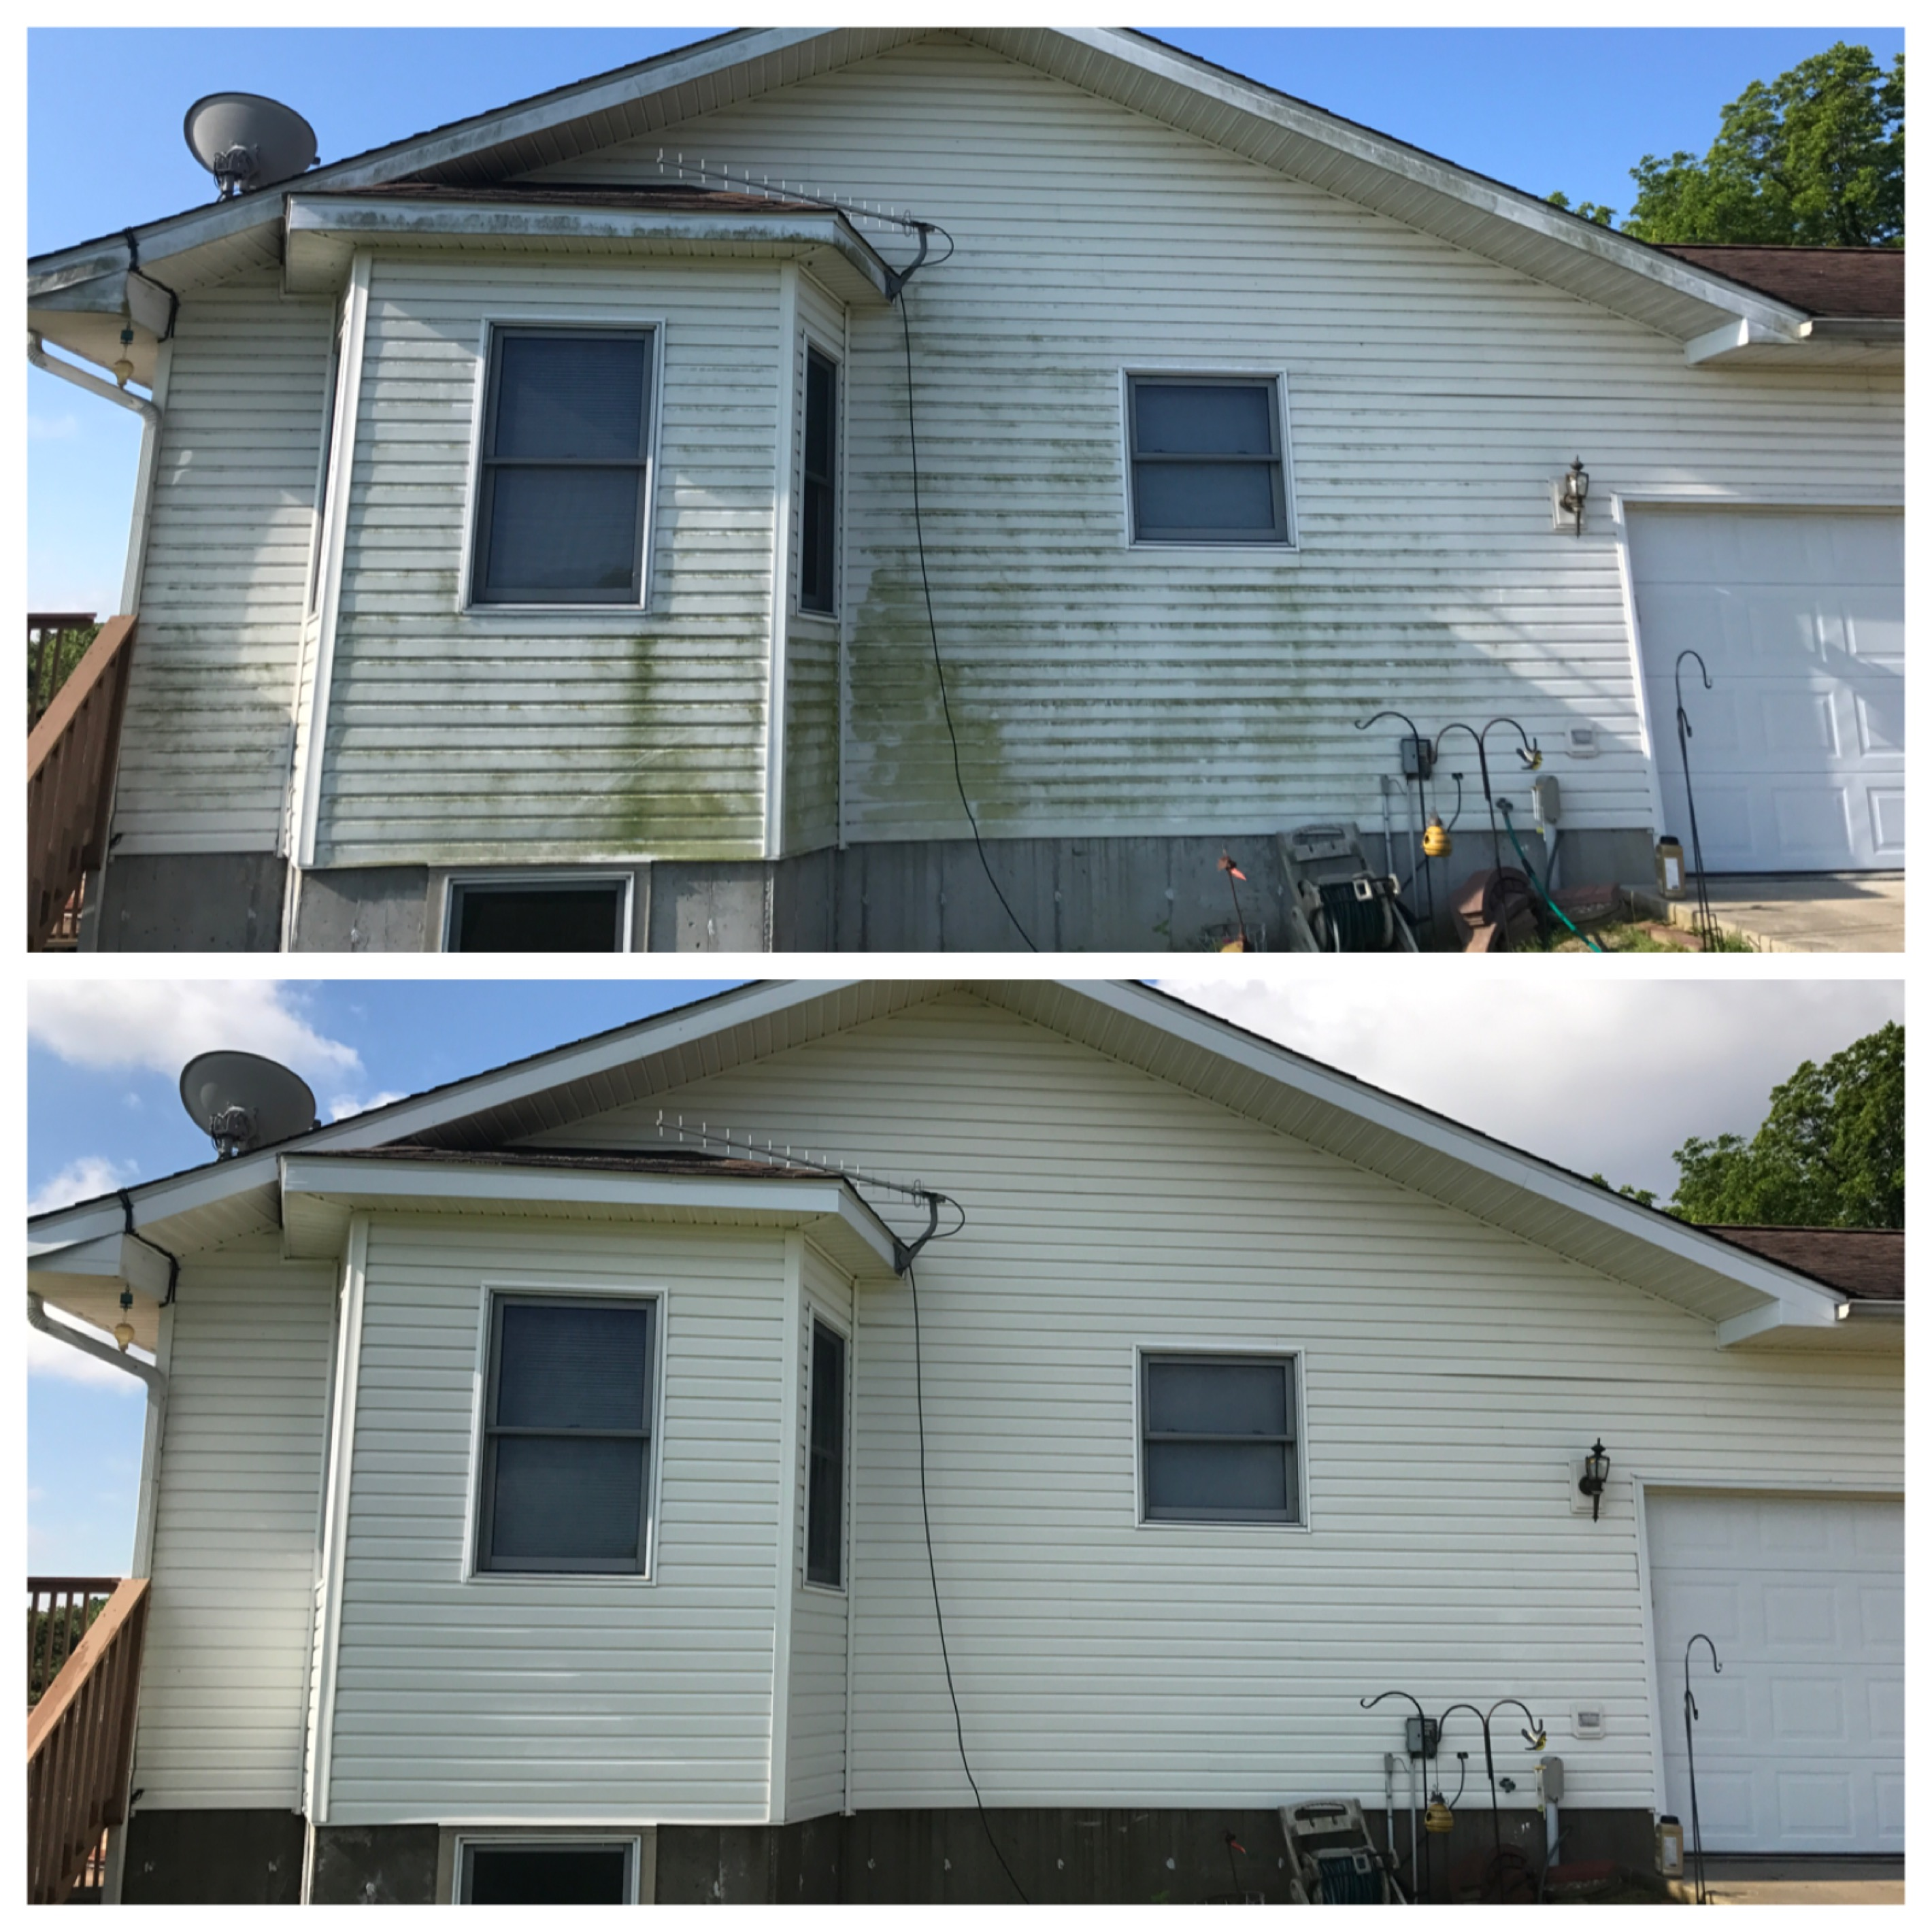 Judge services exterior cleaning specialists southern - Exterior house cleaning services ...